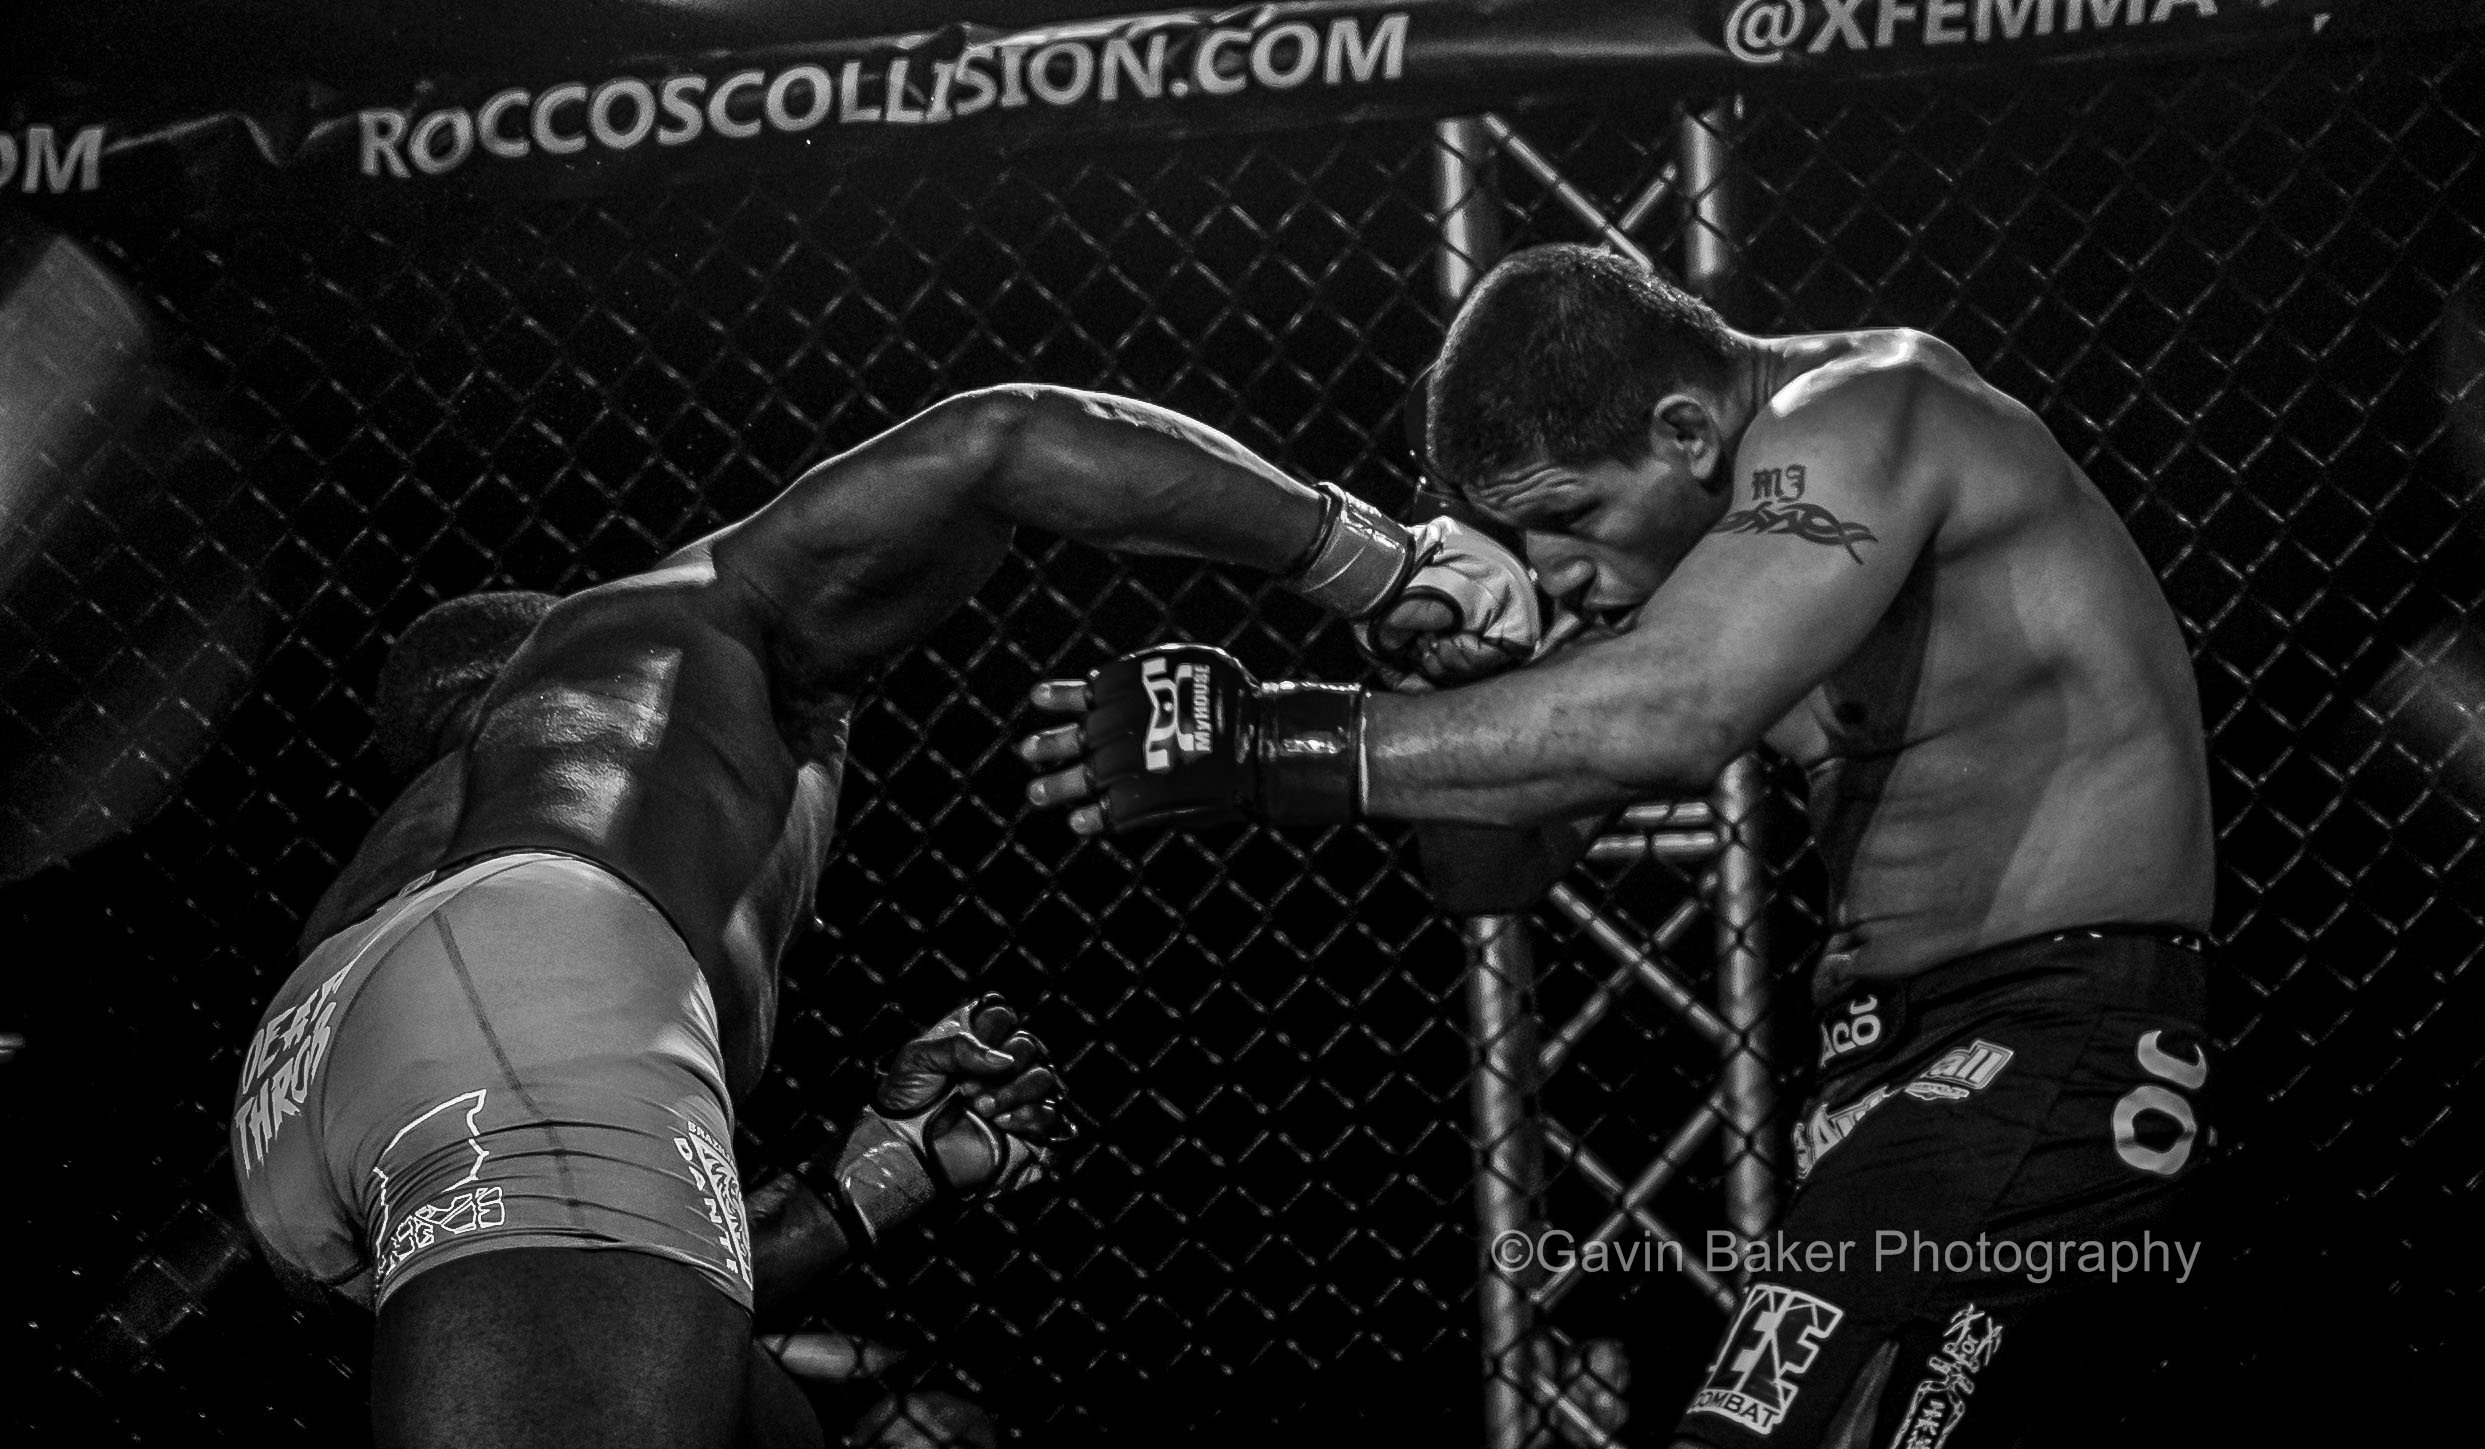 February 21, 2014: Josh Key (white  gloves) lands a punch to the nose of Elder Ramos (black gloves)during the XFE 36 MMA event at Harrah's Philadelphia Casino in Philadelphia, PA.